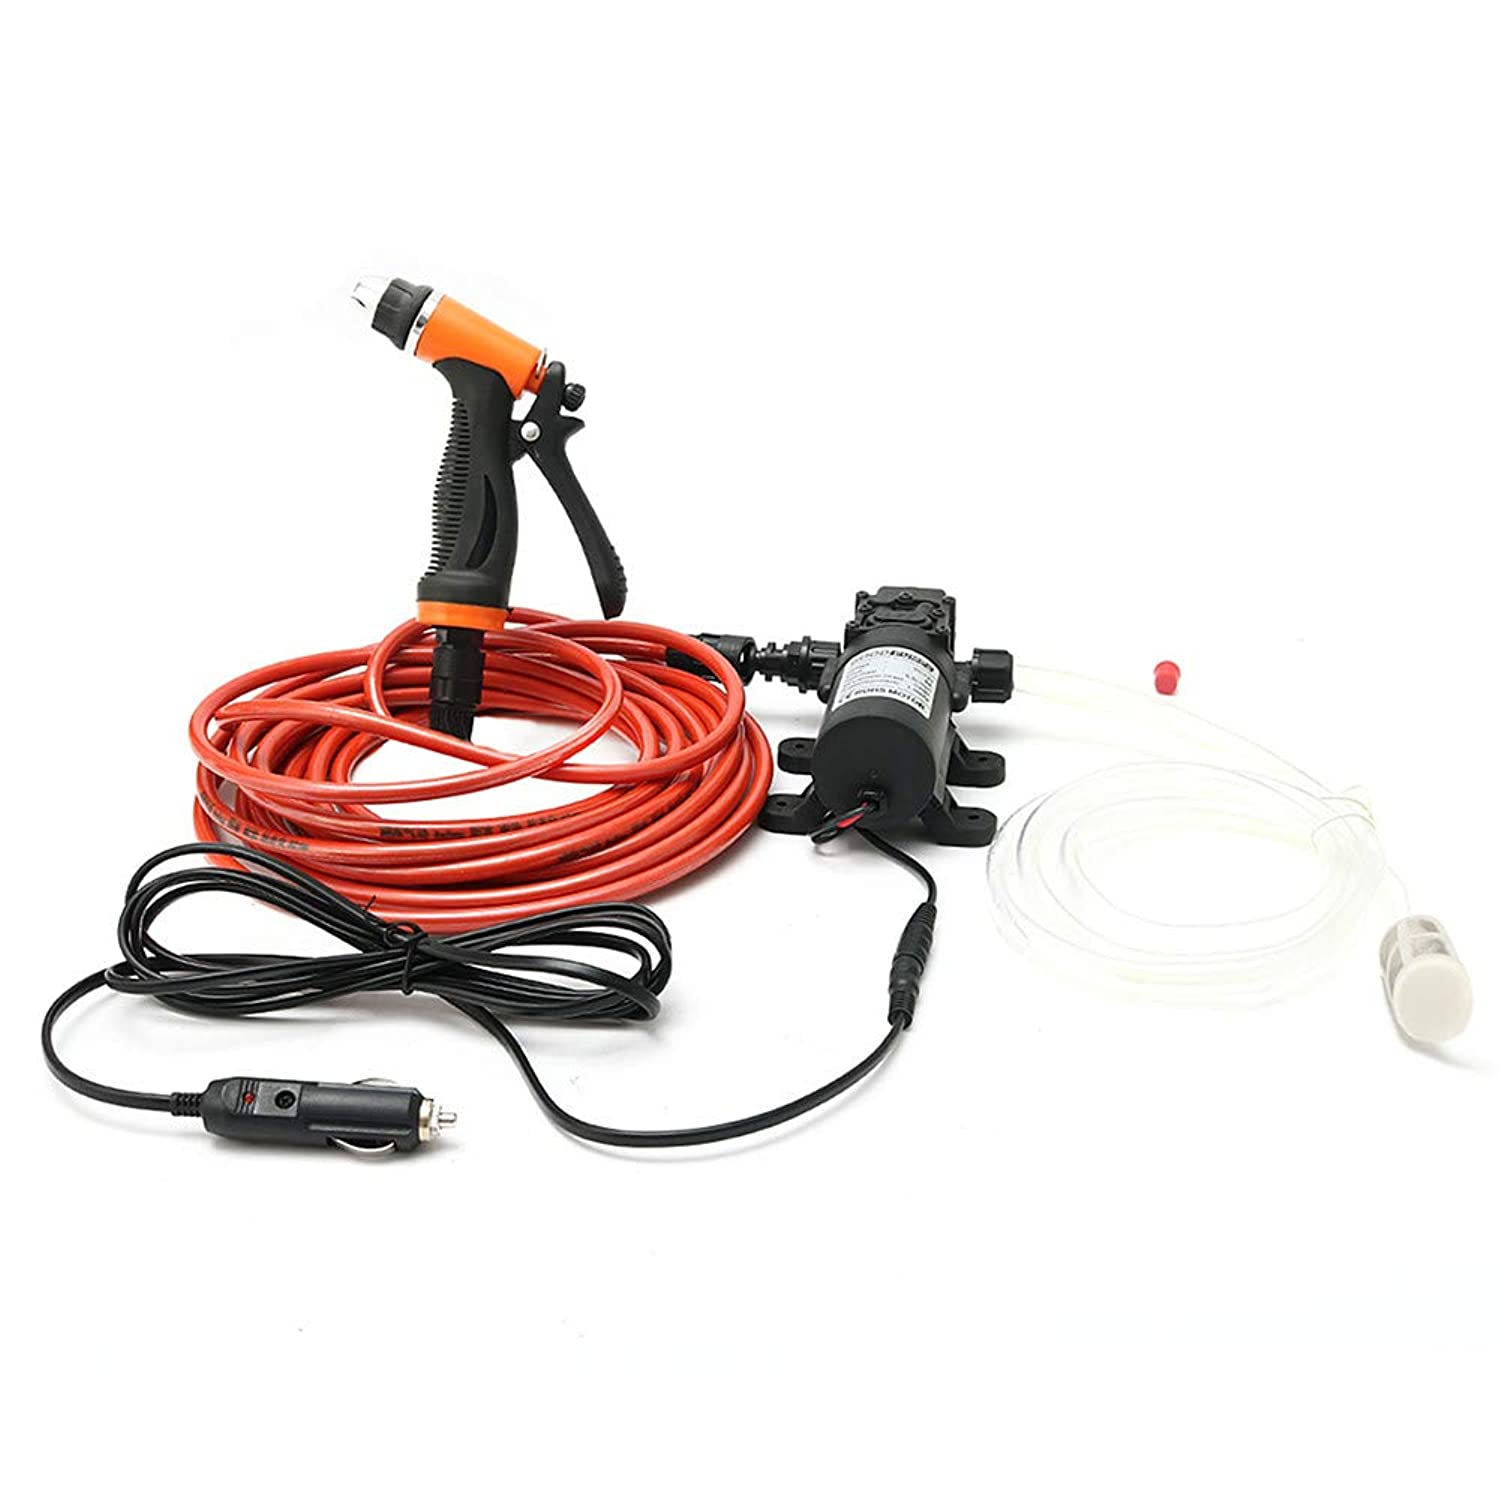 RTYou Mini Portable 12V 100W 160PSI High Pressure Car Electric Washer Pump with 1.2M PVC Hose for Home Garden Vehicles Projects 【Ship from USA 】